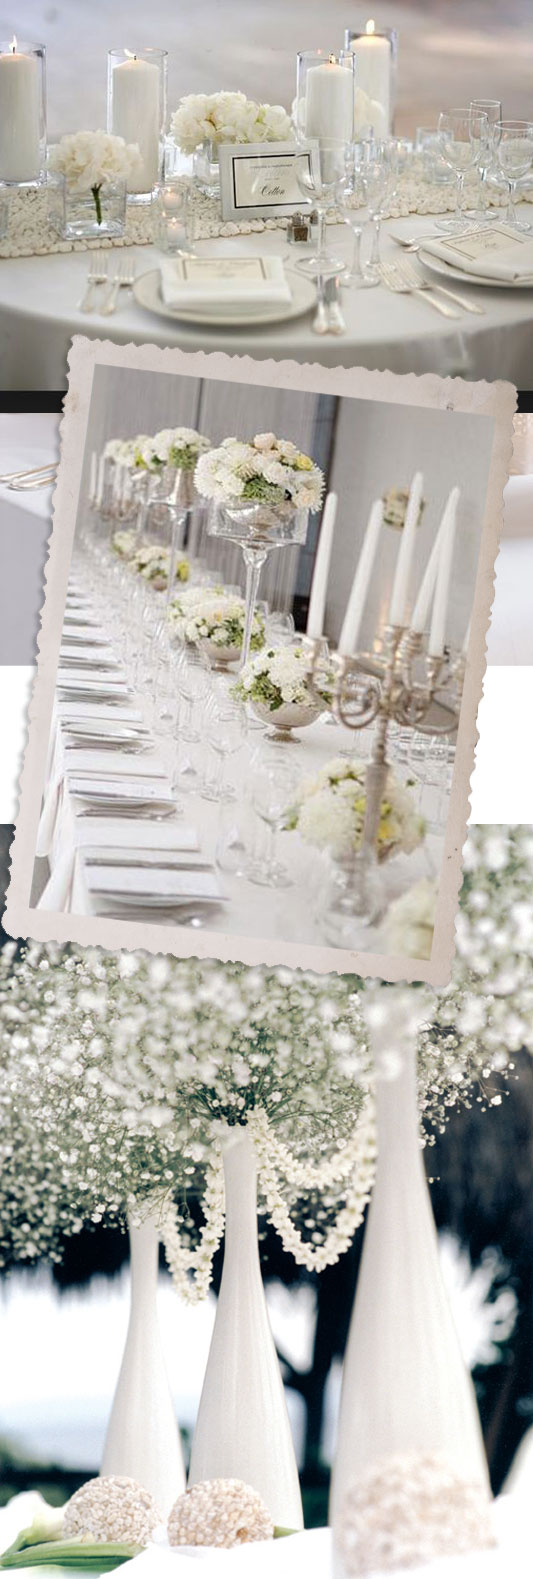 white wedding deco 2